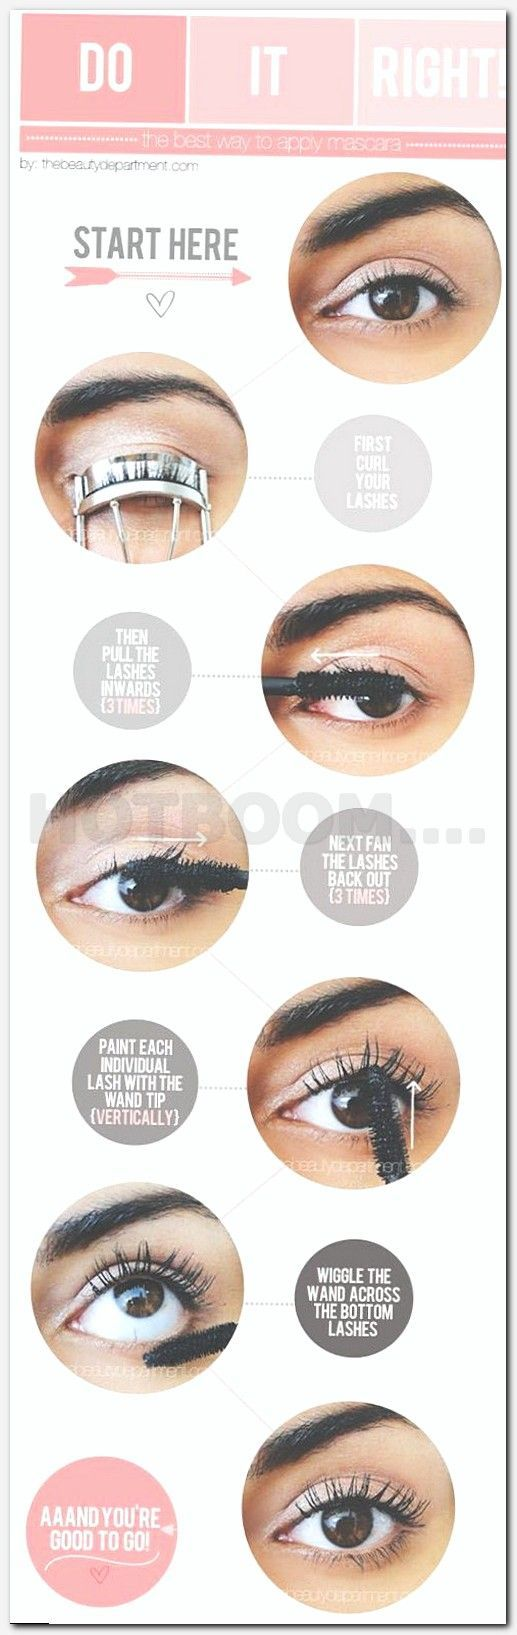 beginner makeup artist resume%0A how to make up your eyes smokey  download makeup plus  how to be a